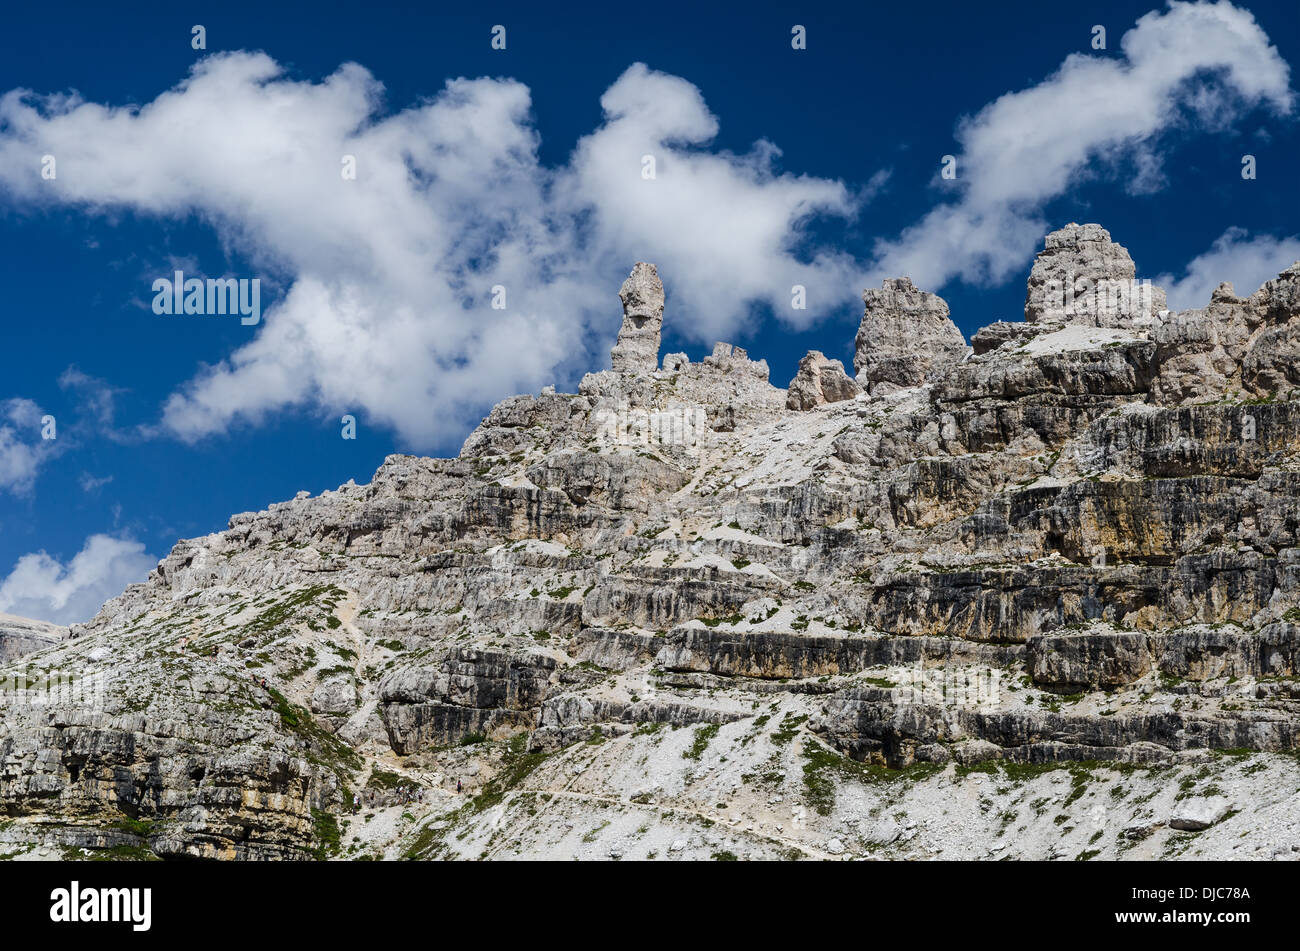 Landscape with Sexten Dolomites mountain range in South Tyrol in Northern Italy - Stock Image